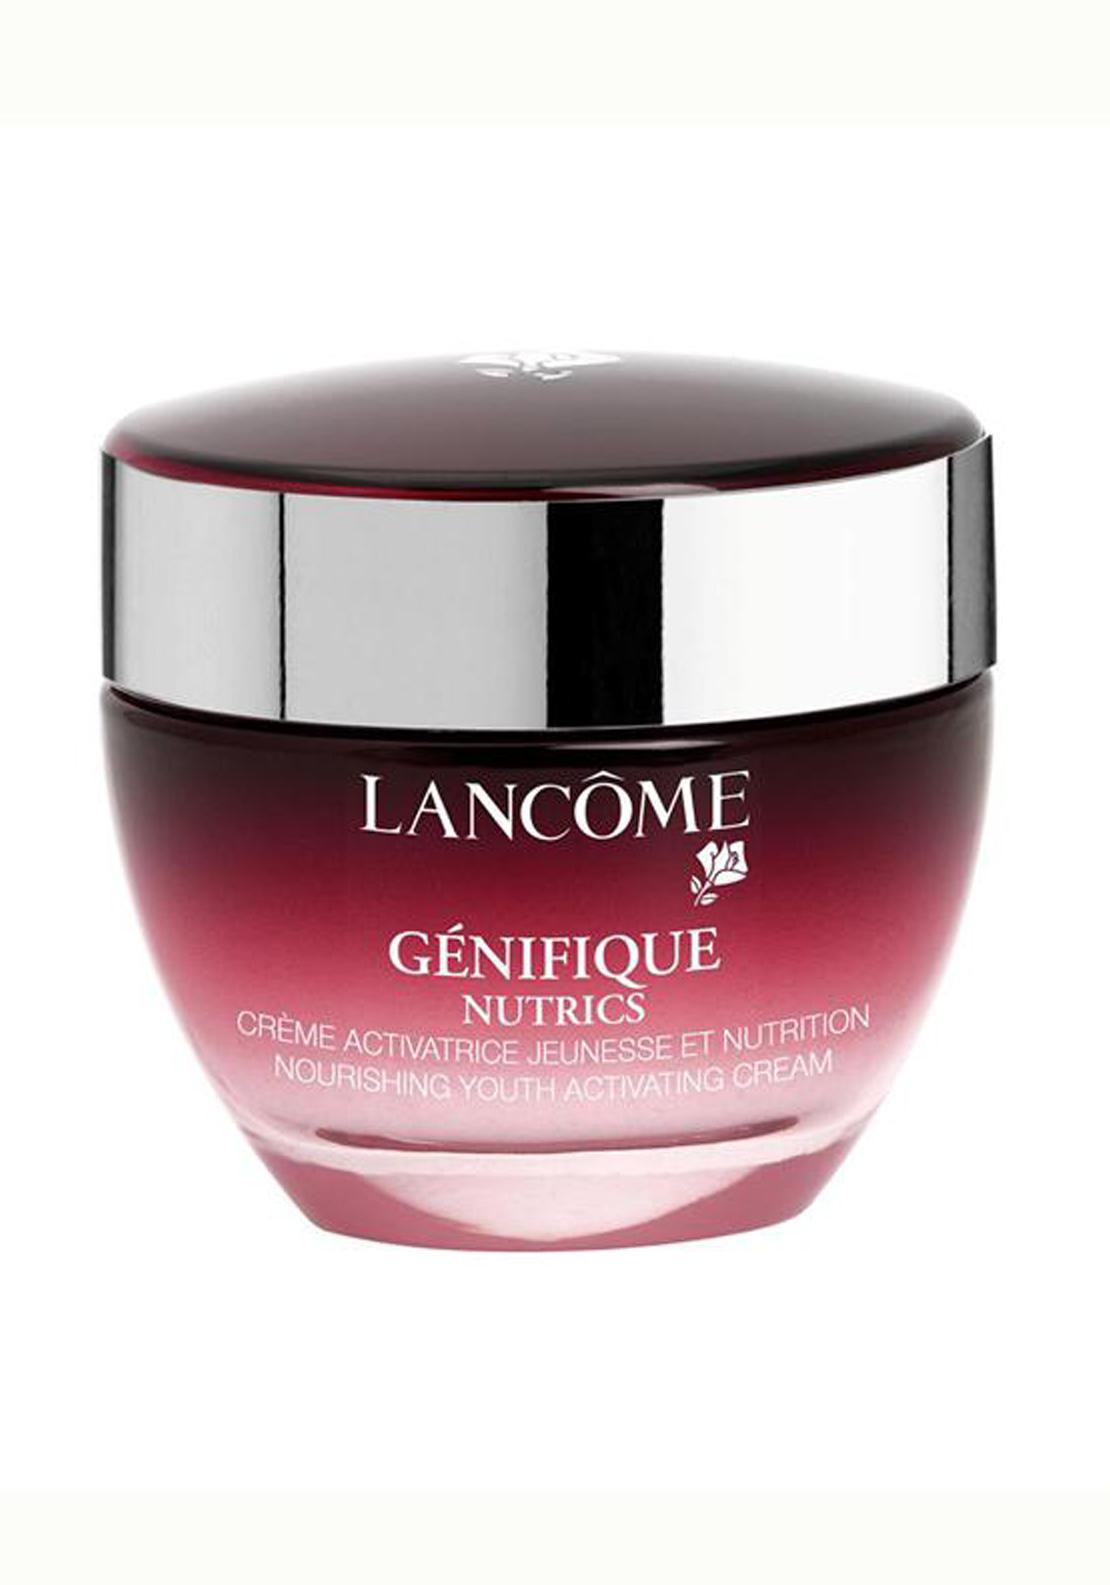 Lancome Genifique Nutrics Cream 50ml Lancome